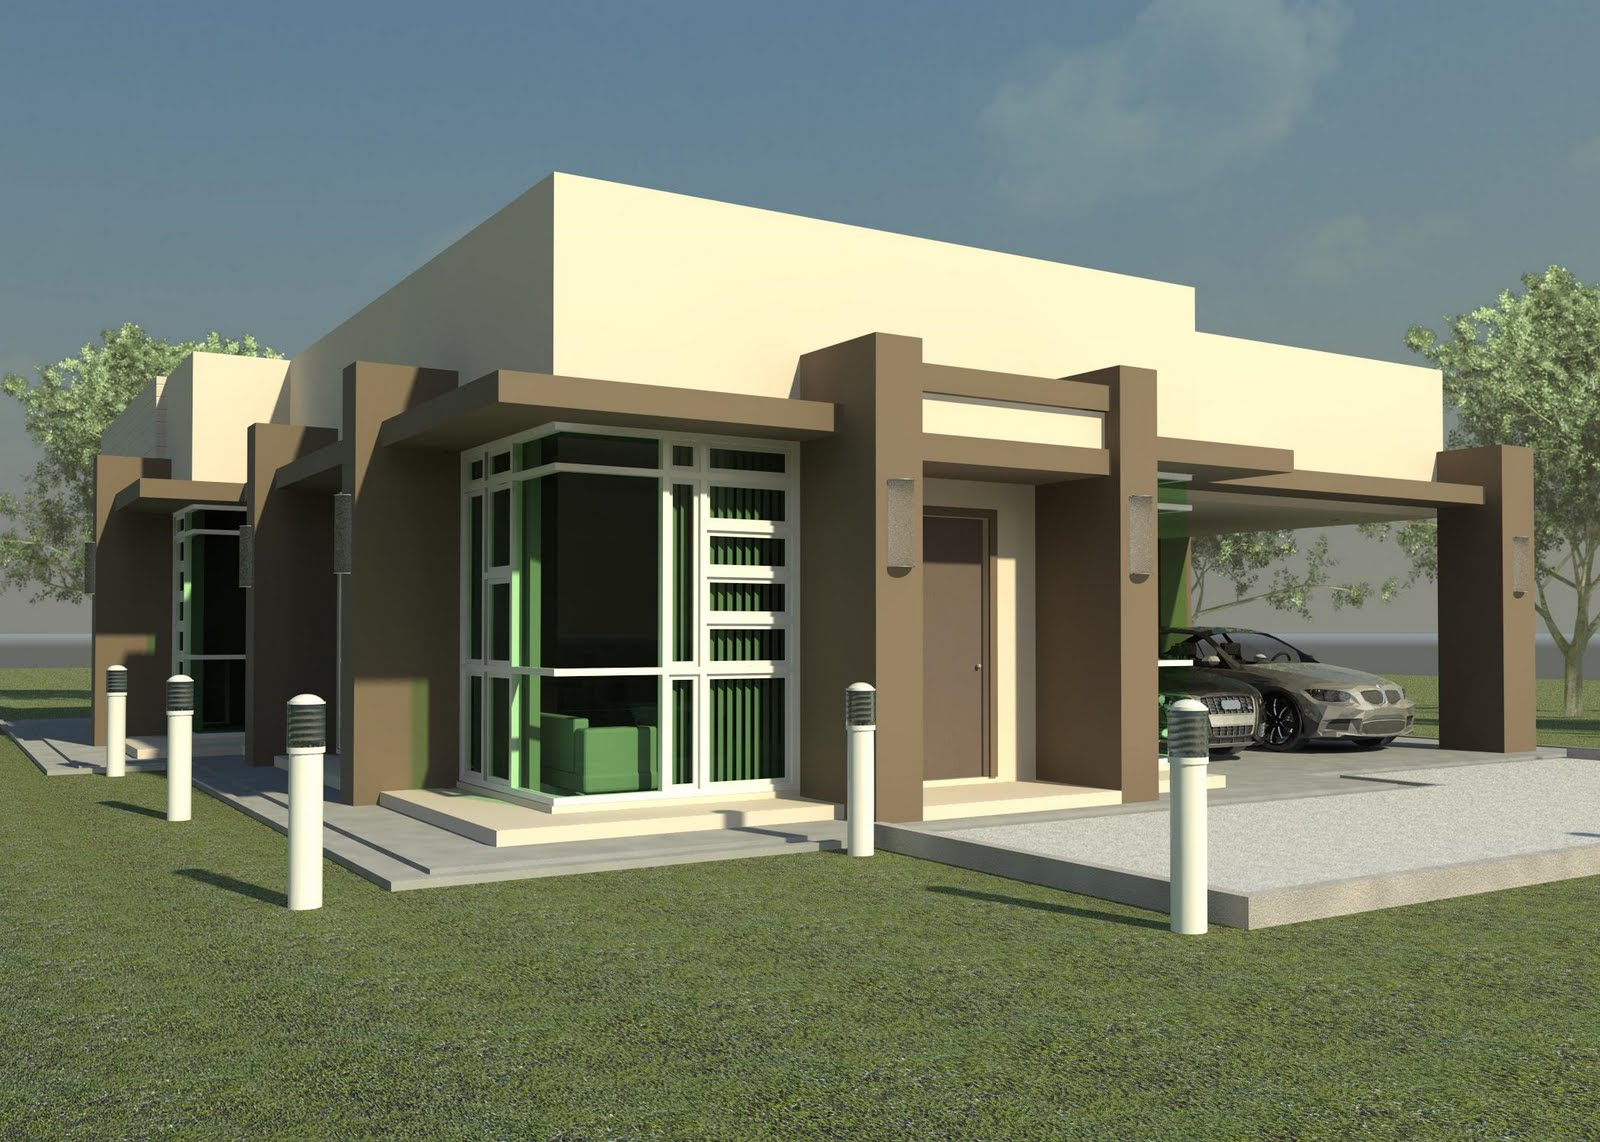 New home designs latest.: Modern homes beautiful single